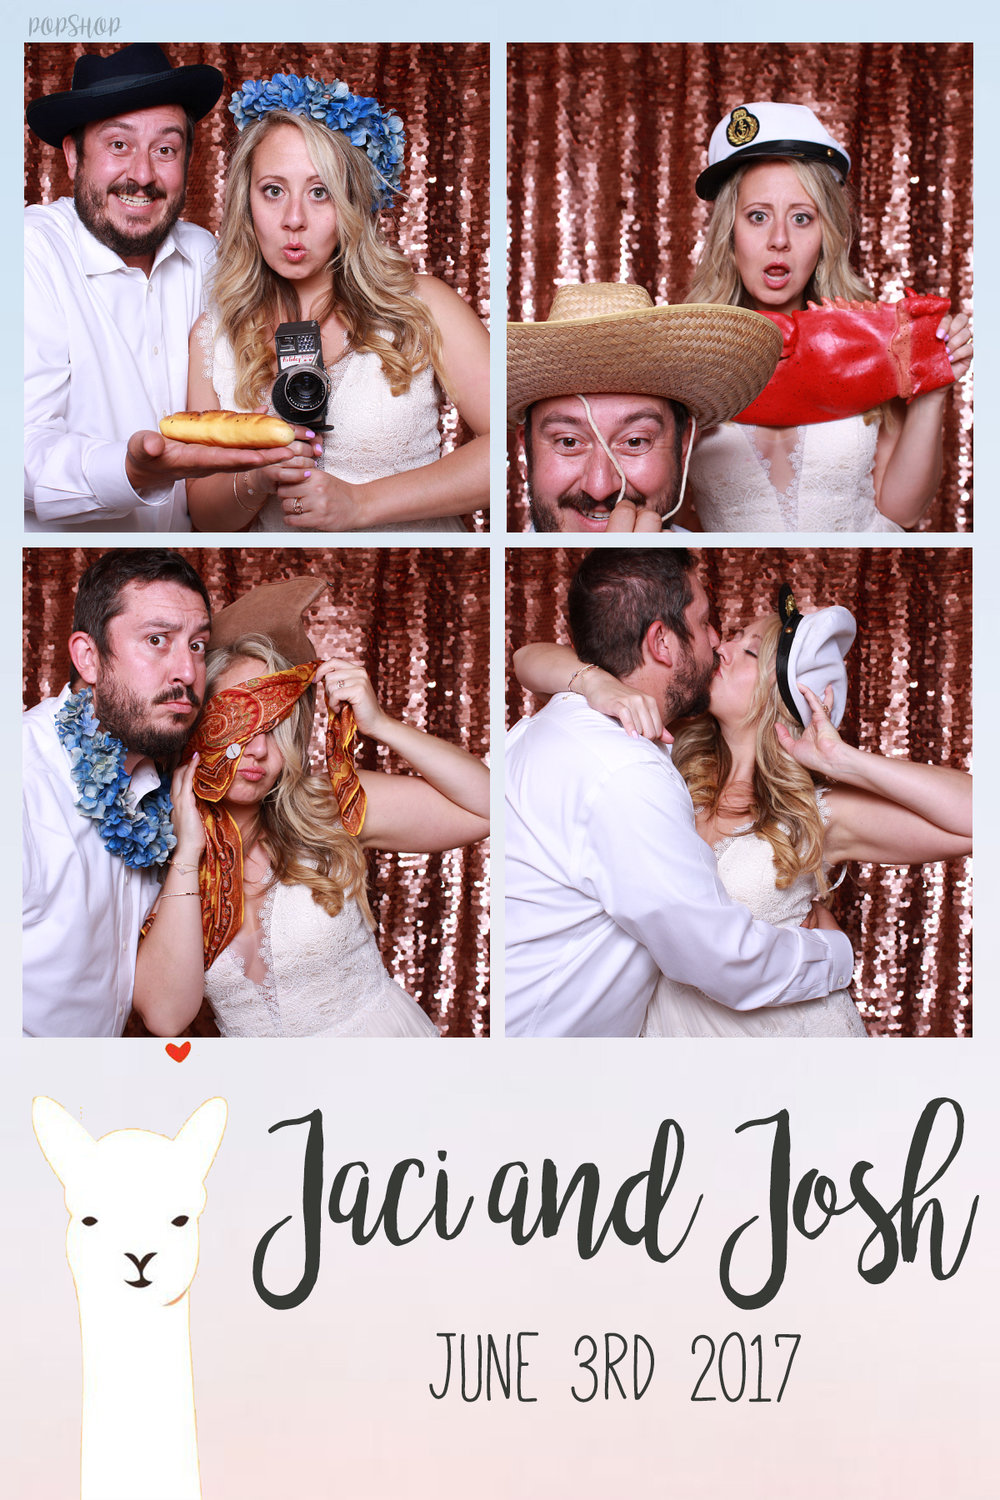 Jaci And Josh June 3rd 2017